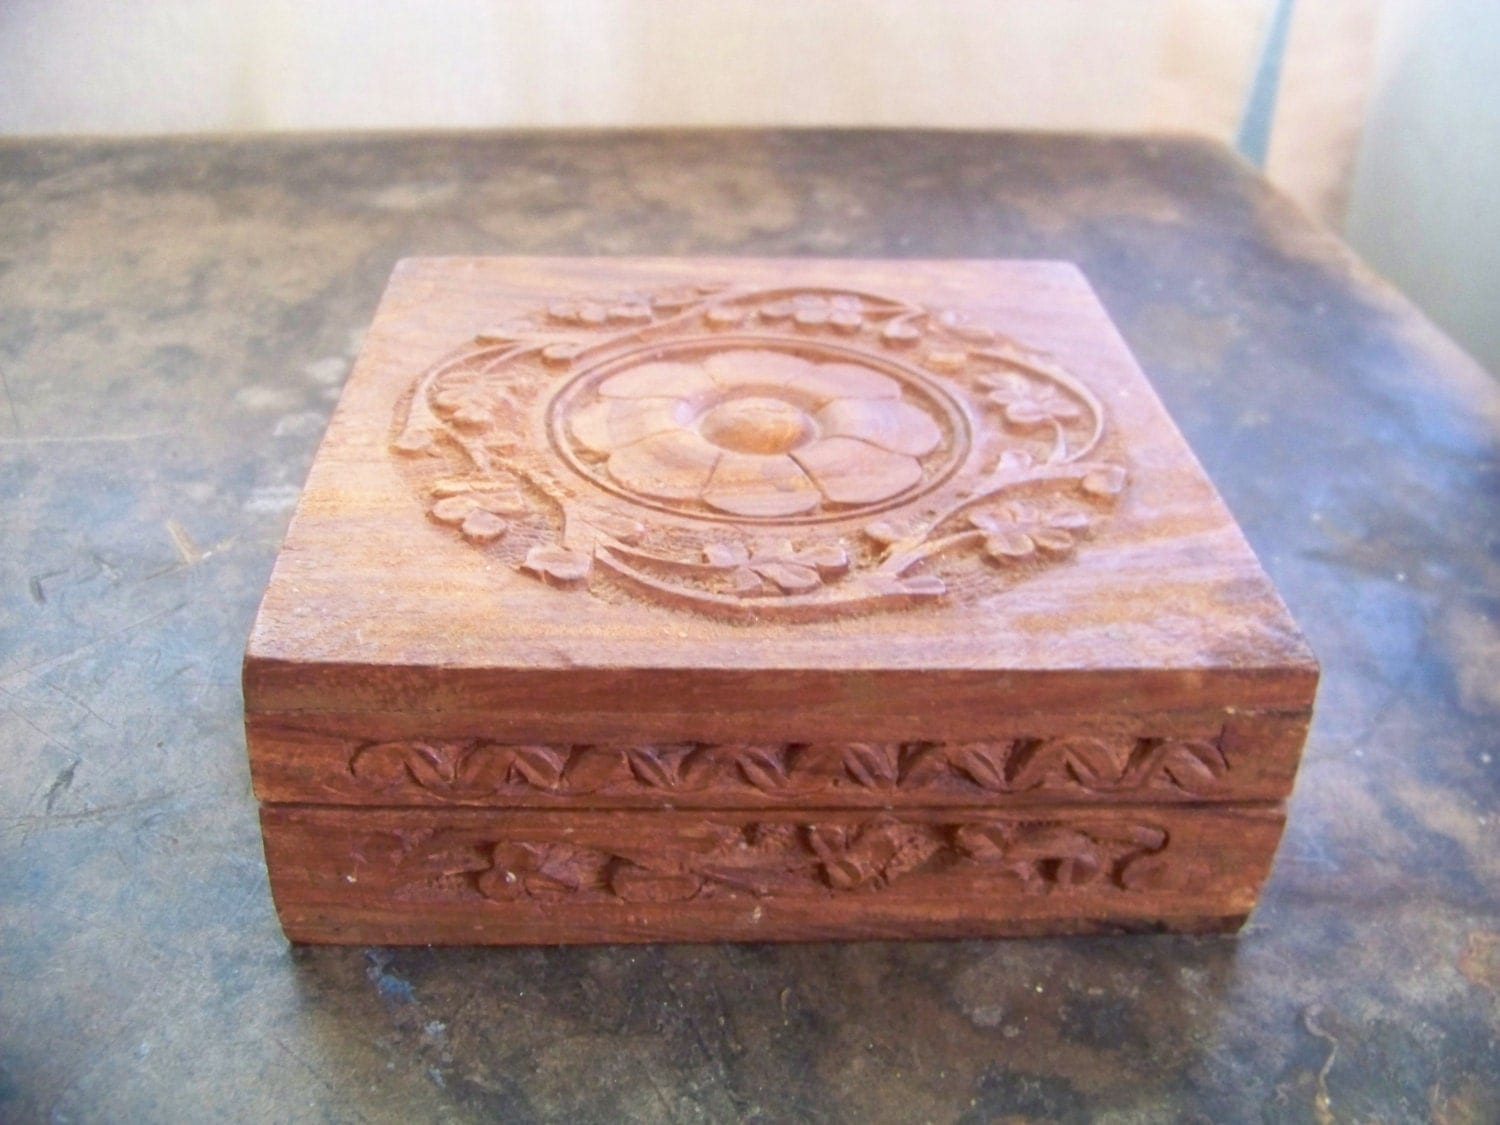 Superb img of Folk Art Hand Carved Wooden Box Vintage – Haute Juice with #8B5940 color and 1500x1125 pixels